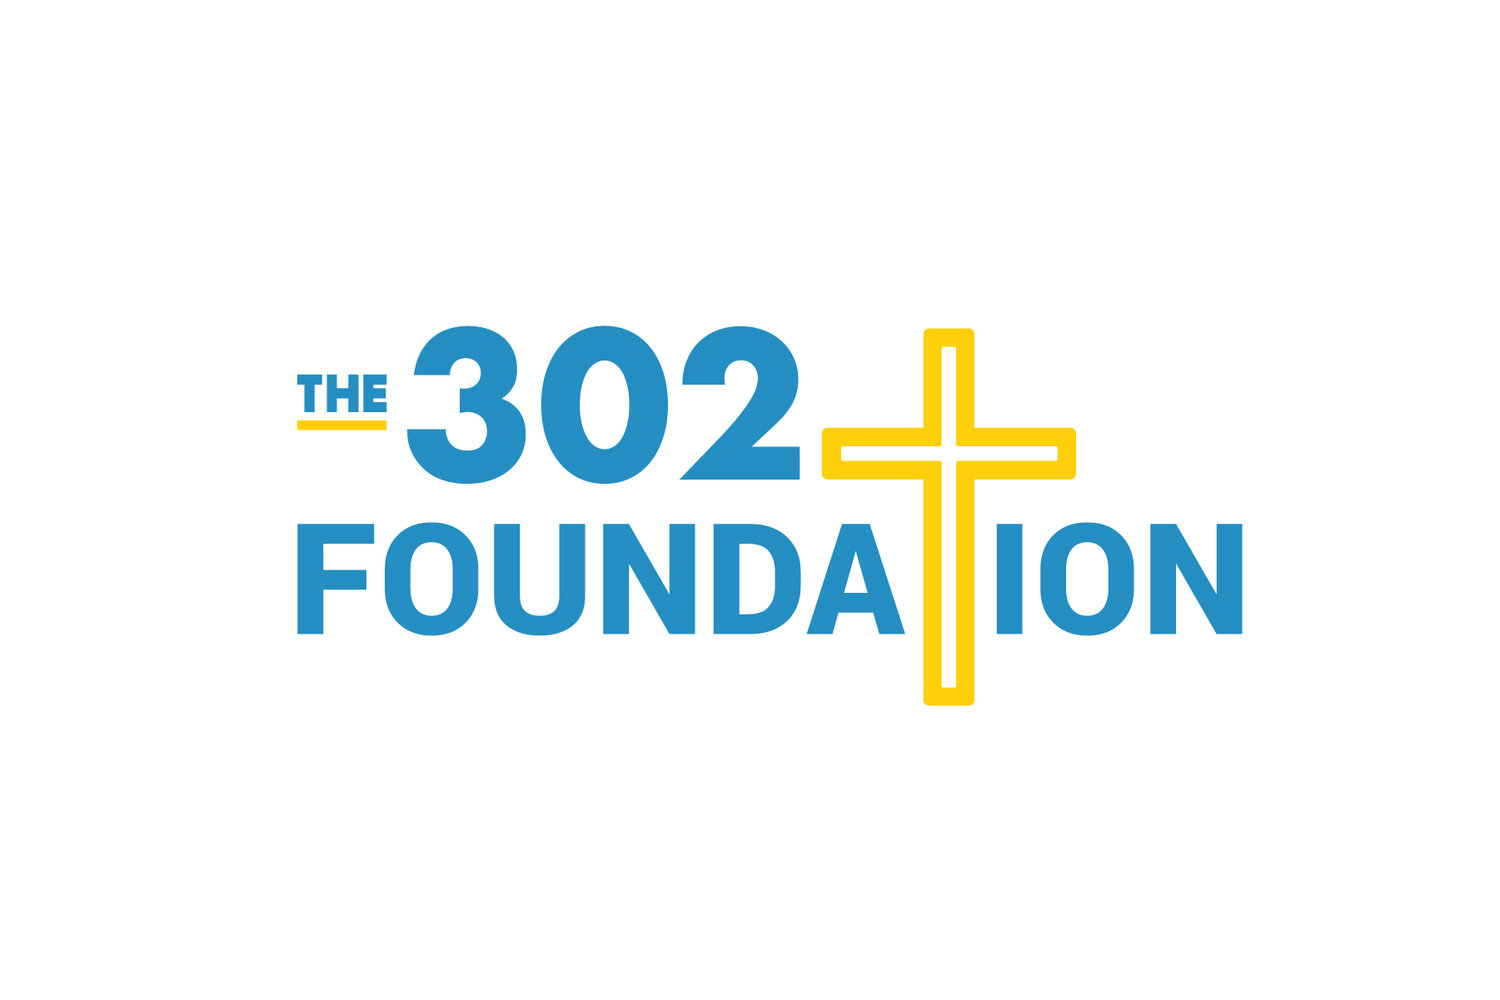 The 302 Foundation